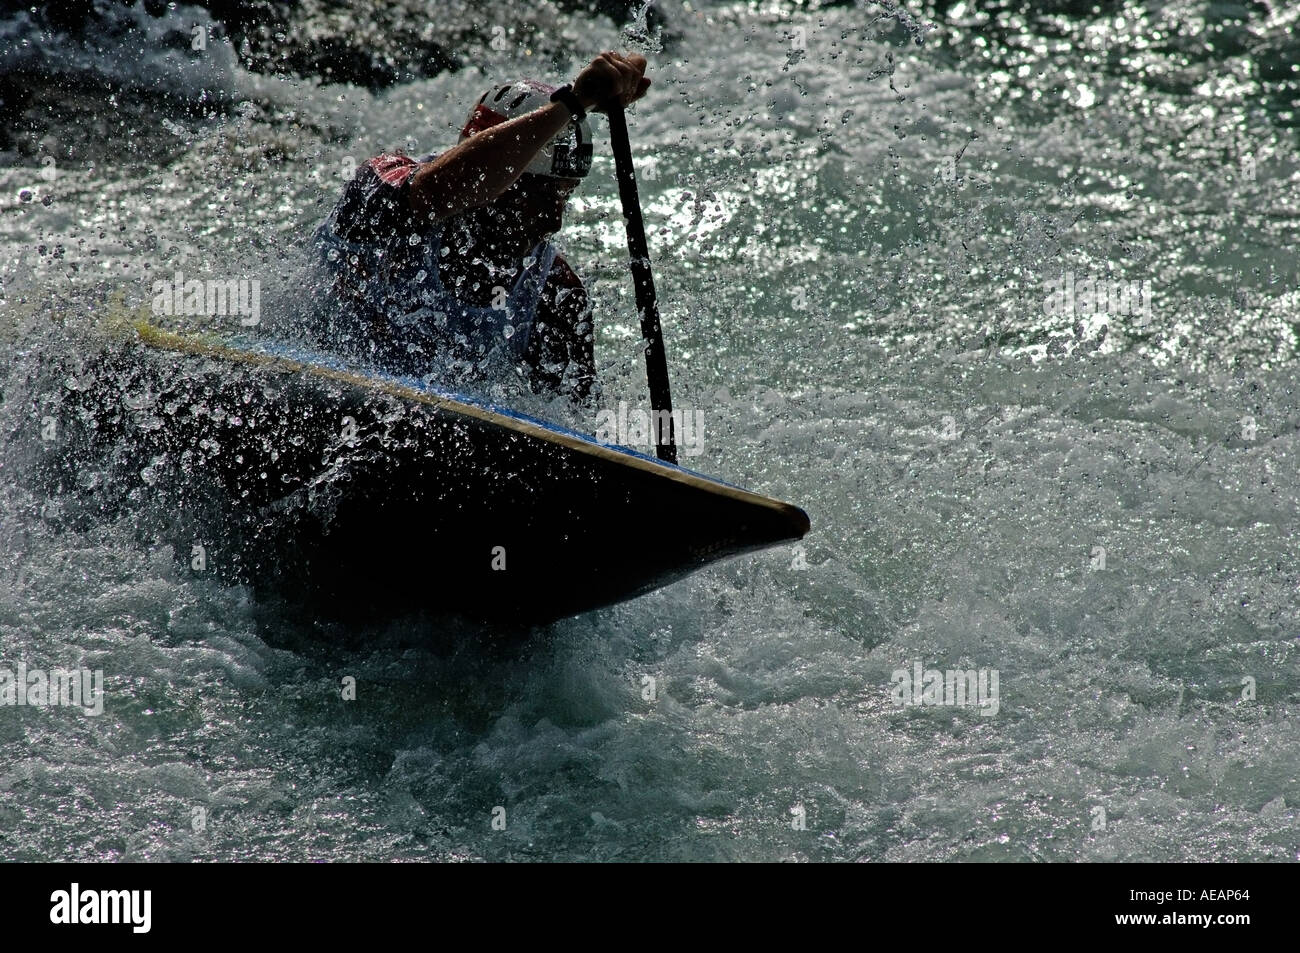 white-water-canoe-kayak-french-national-championships-bourg-st-maurice-AEAP64.jpg